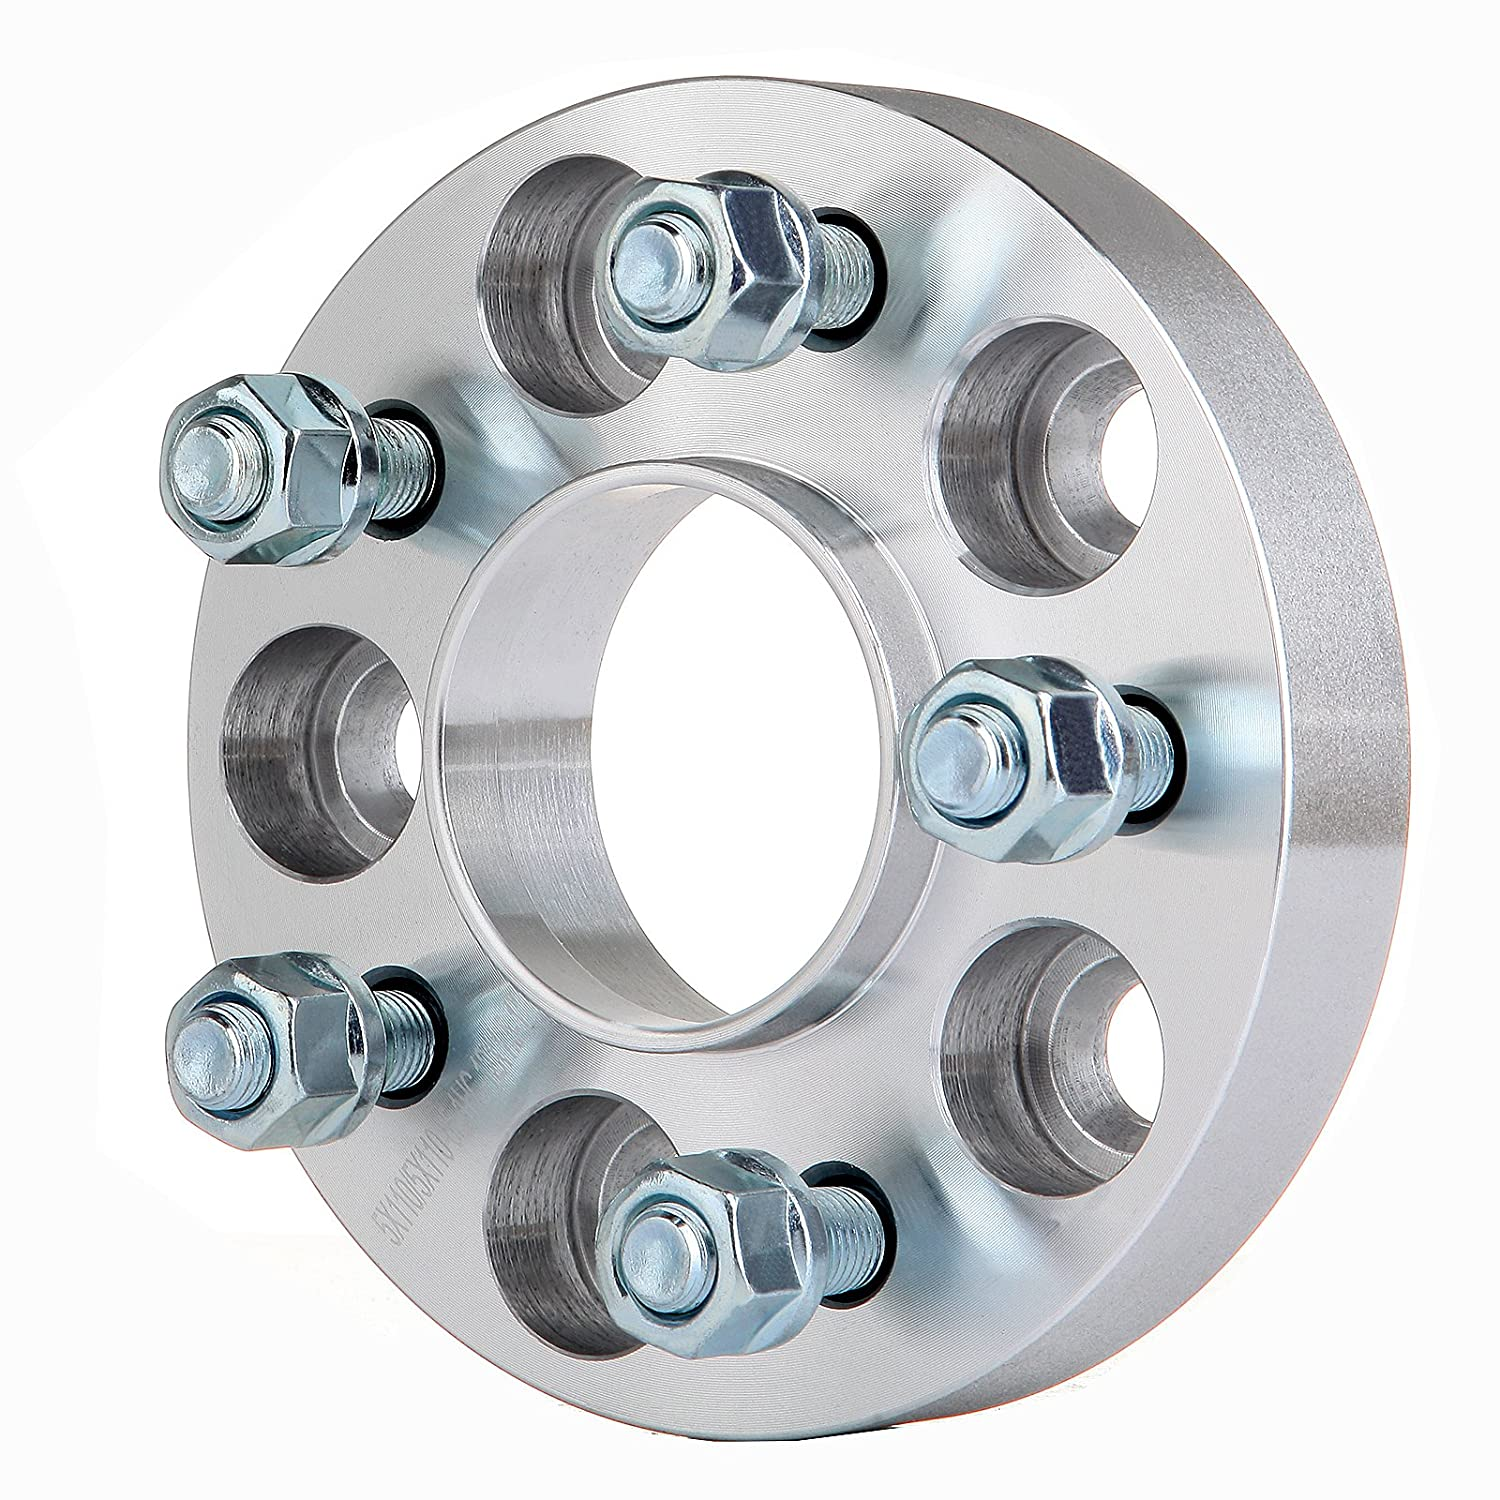 SCITOO 4X 1 5 Lug 5x110 to 5x110 Hubcentric Wheel Spacers Adapters 12x1.5 Studs Compatible with Cadillac Catera Chevrolet Malibu HHR Cobalt SS Pontiac G6